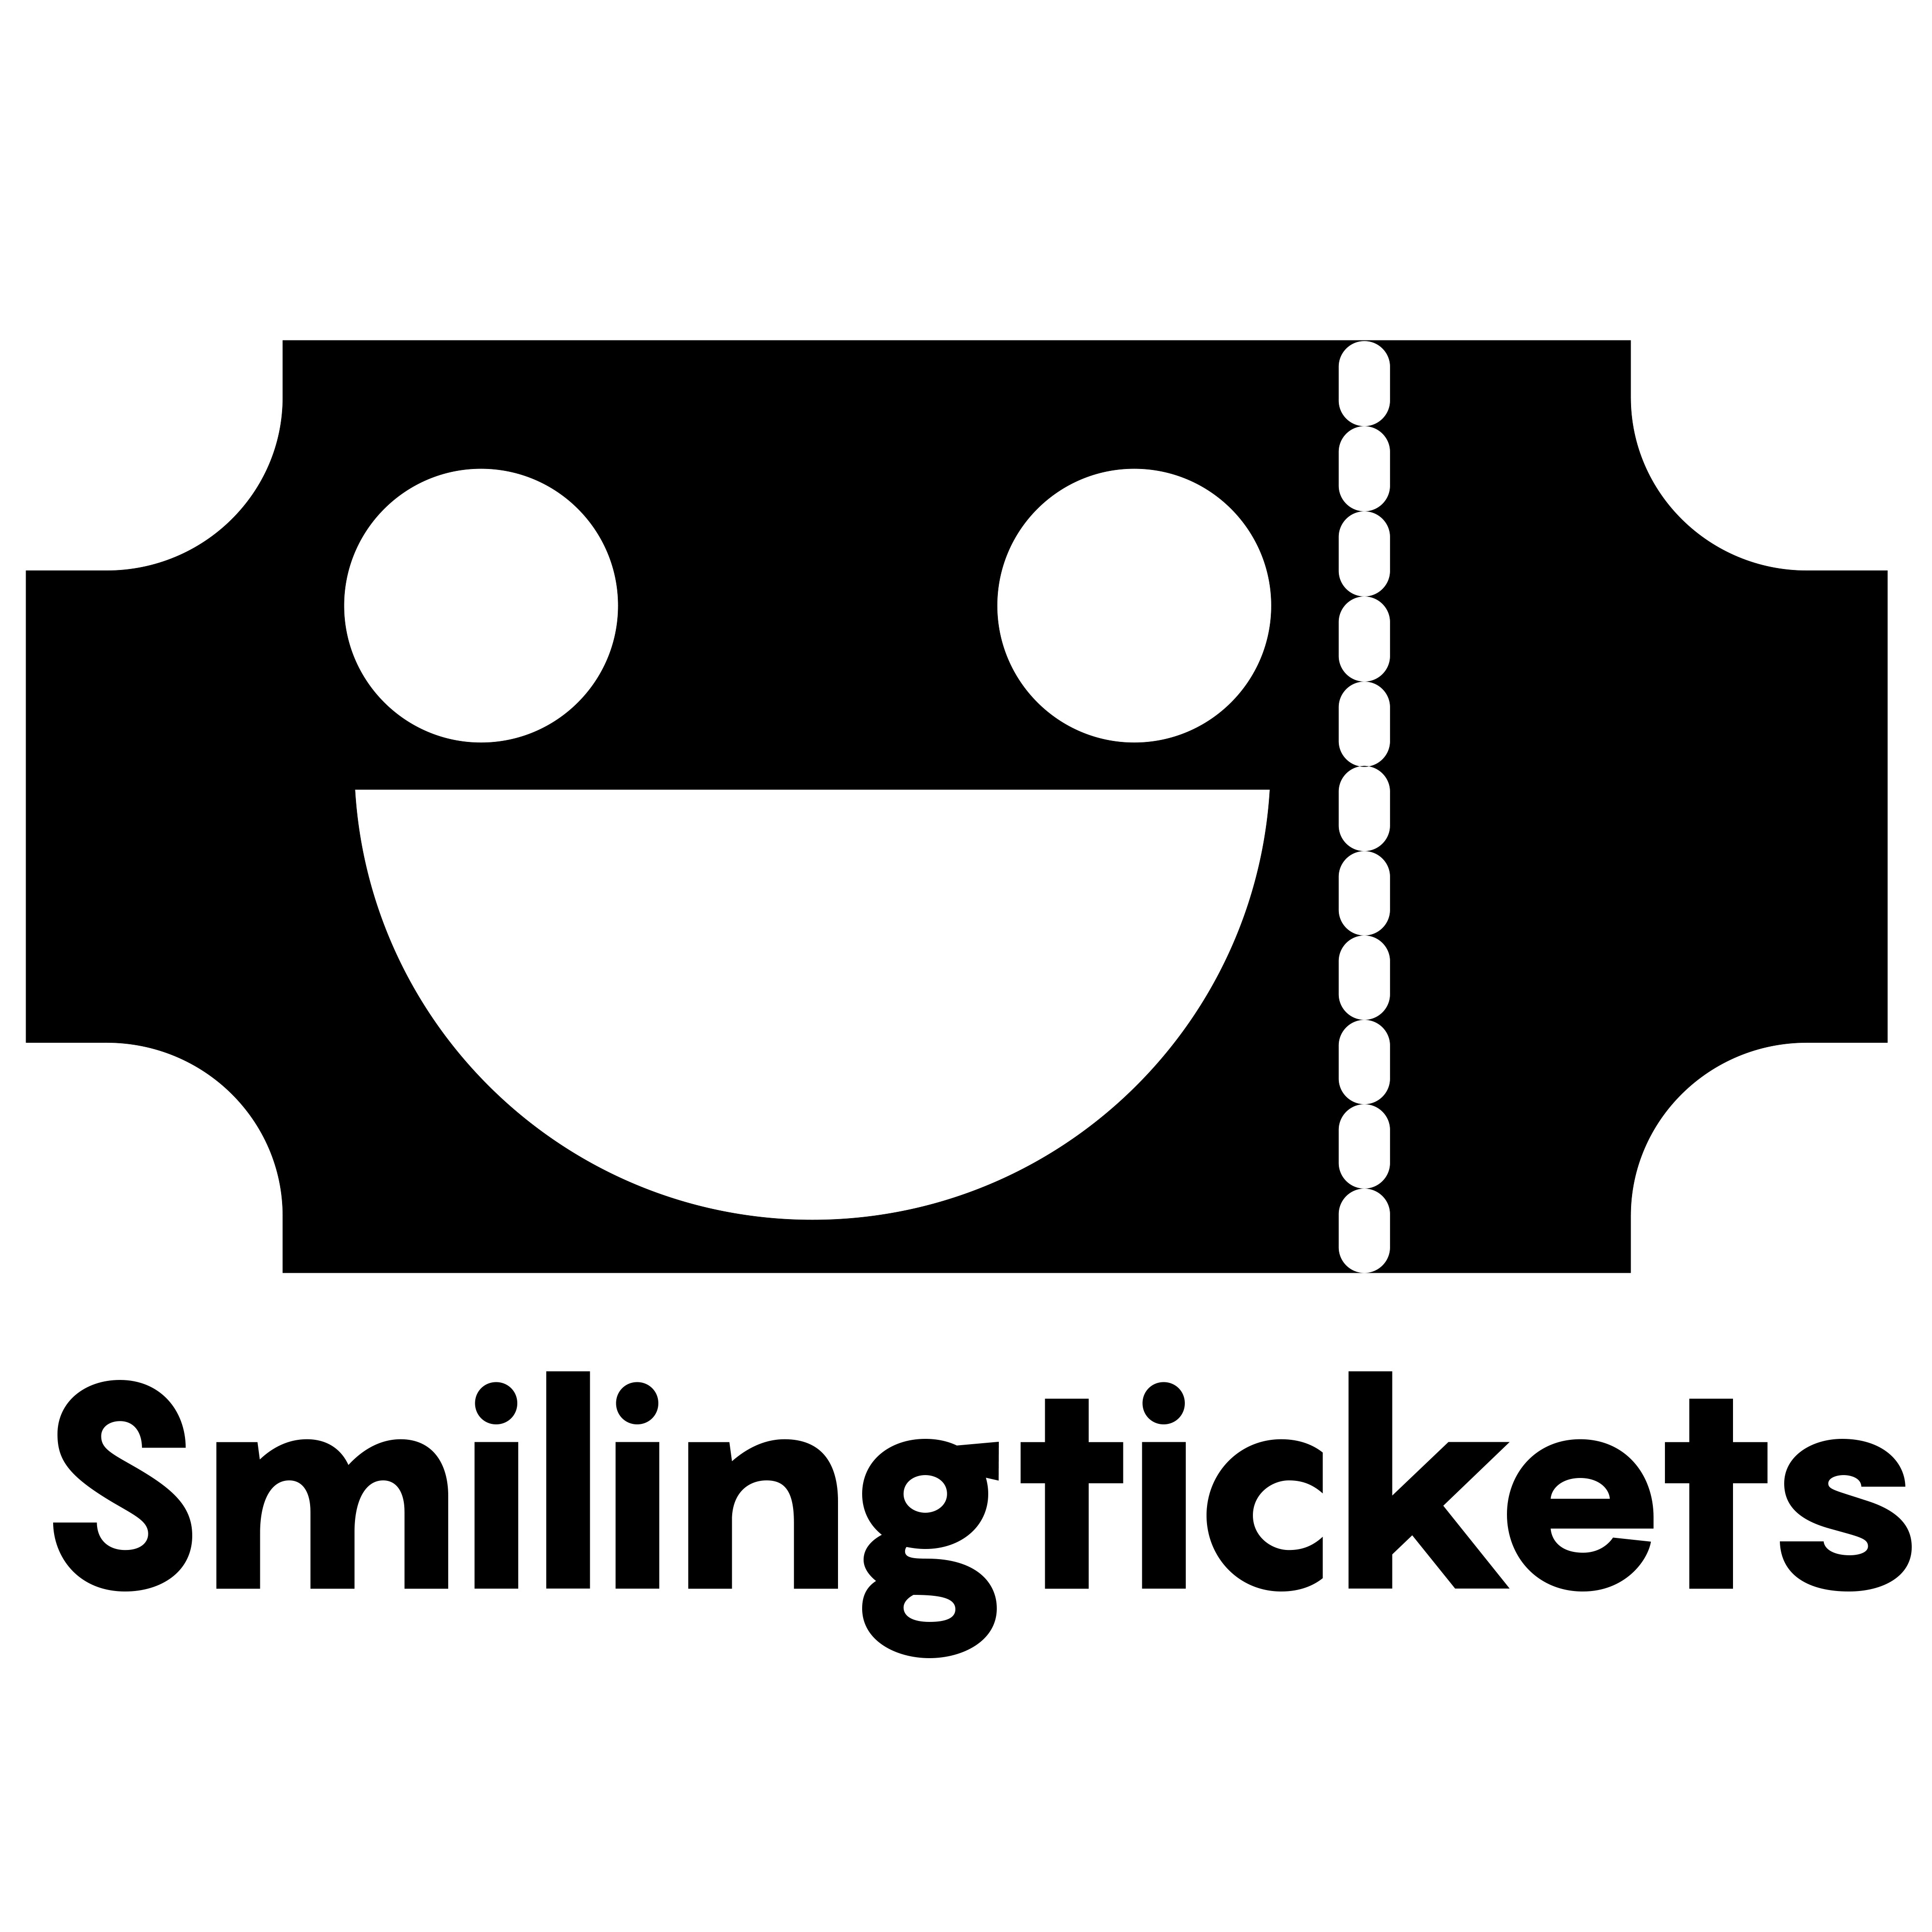 Cheap Logrono Tickets